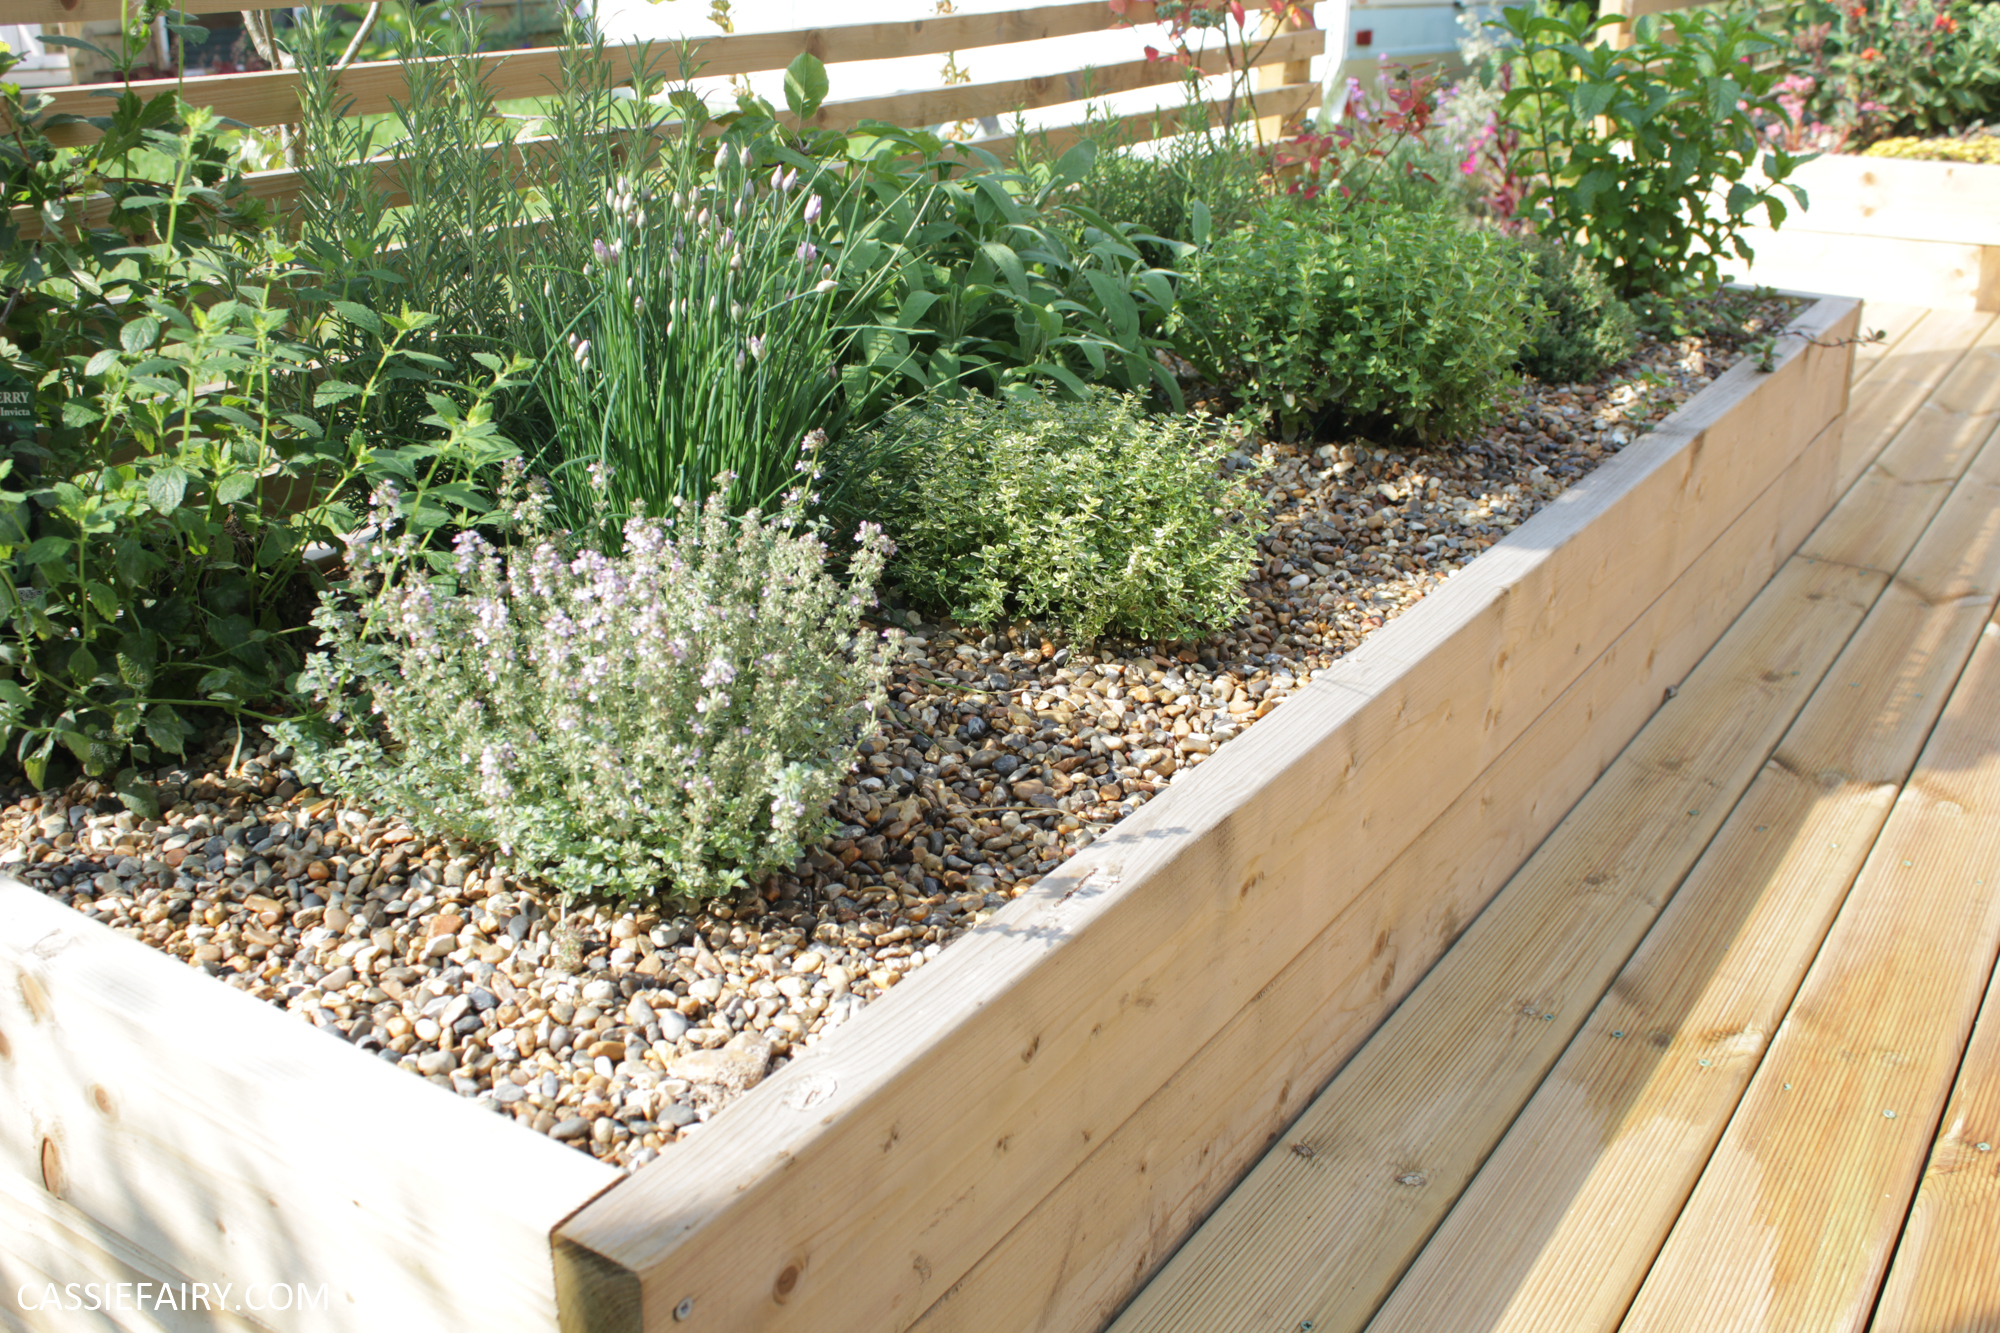 Weed Free Raised Bed To Grow Your Own Herbs, How To Start A Raised Herb Garden